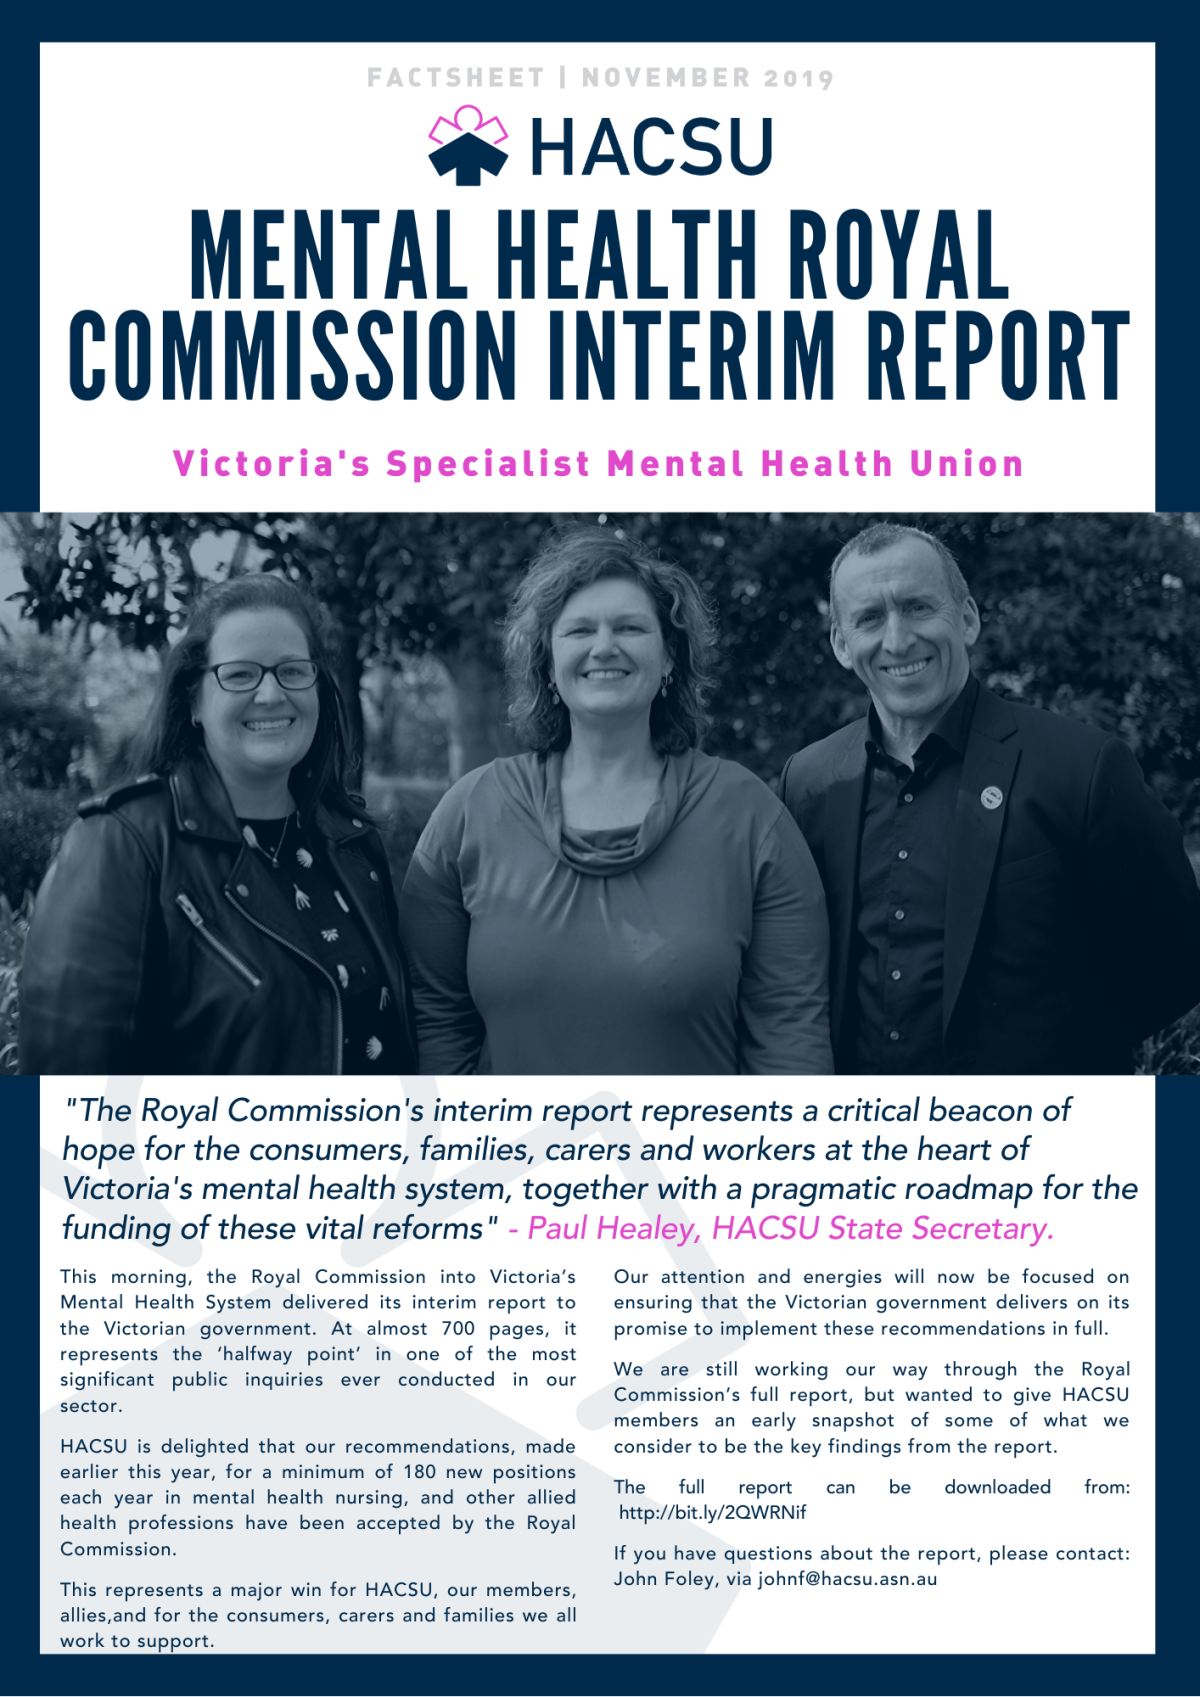 Mental Health Royal Commission